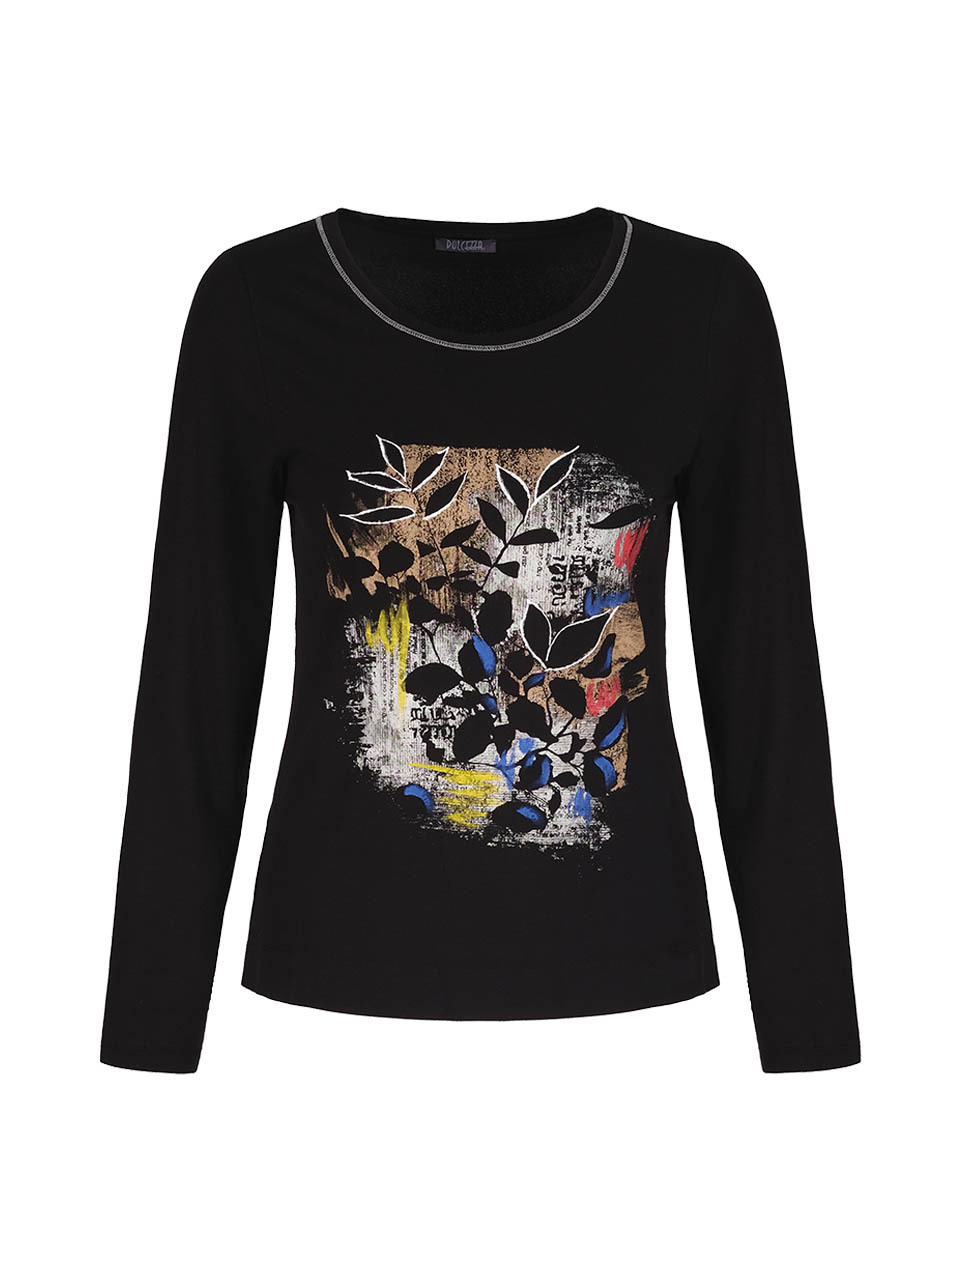 Simply Art Dolcezza: Double OO Abstract Art Top (2 Left!) Dolcezza_SimplyArt_71691